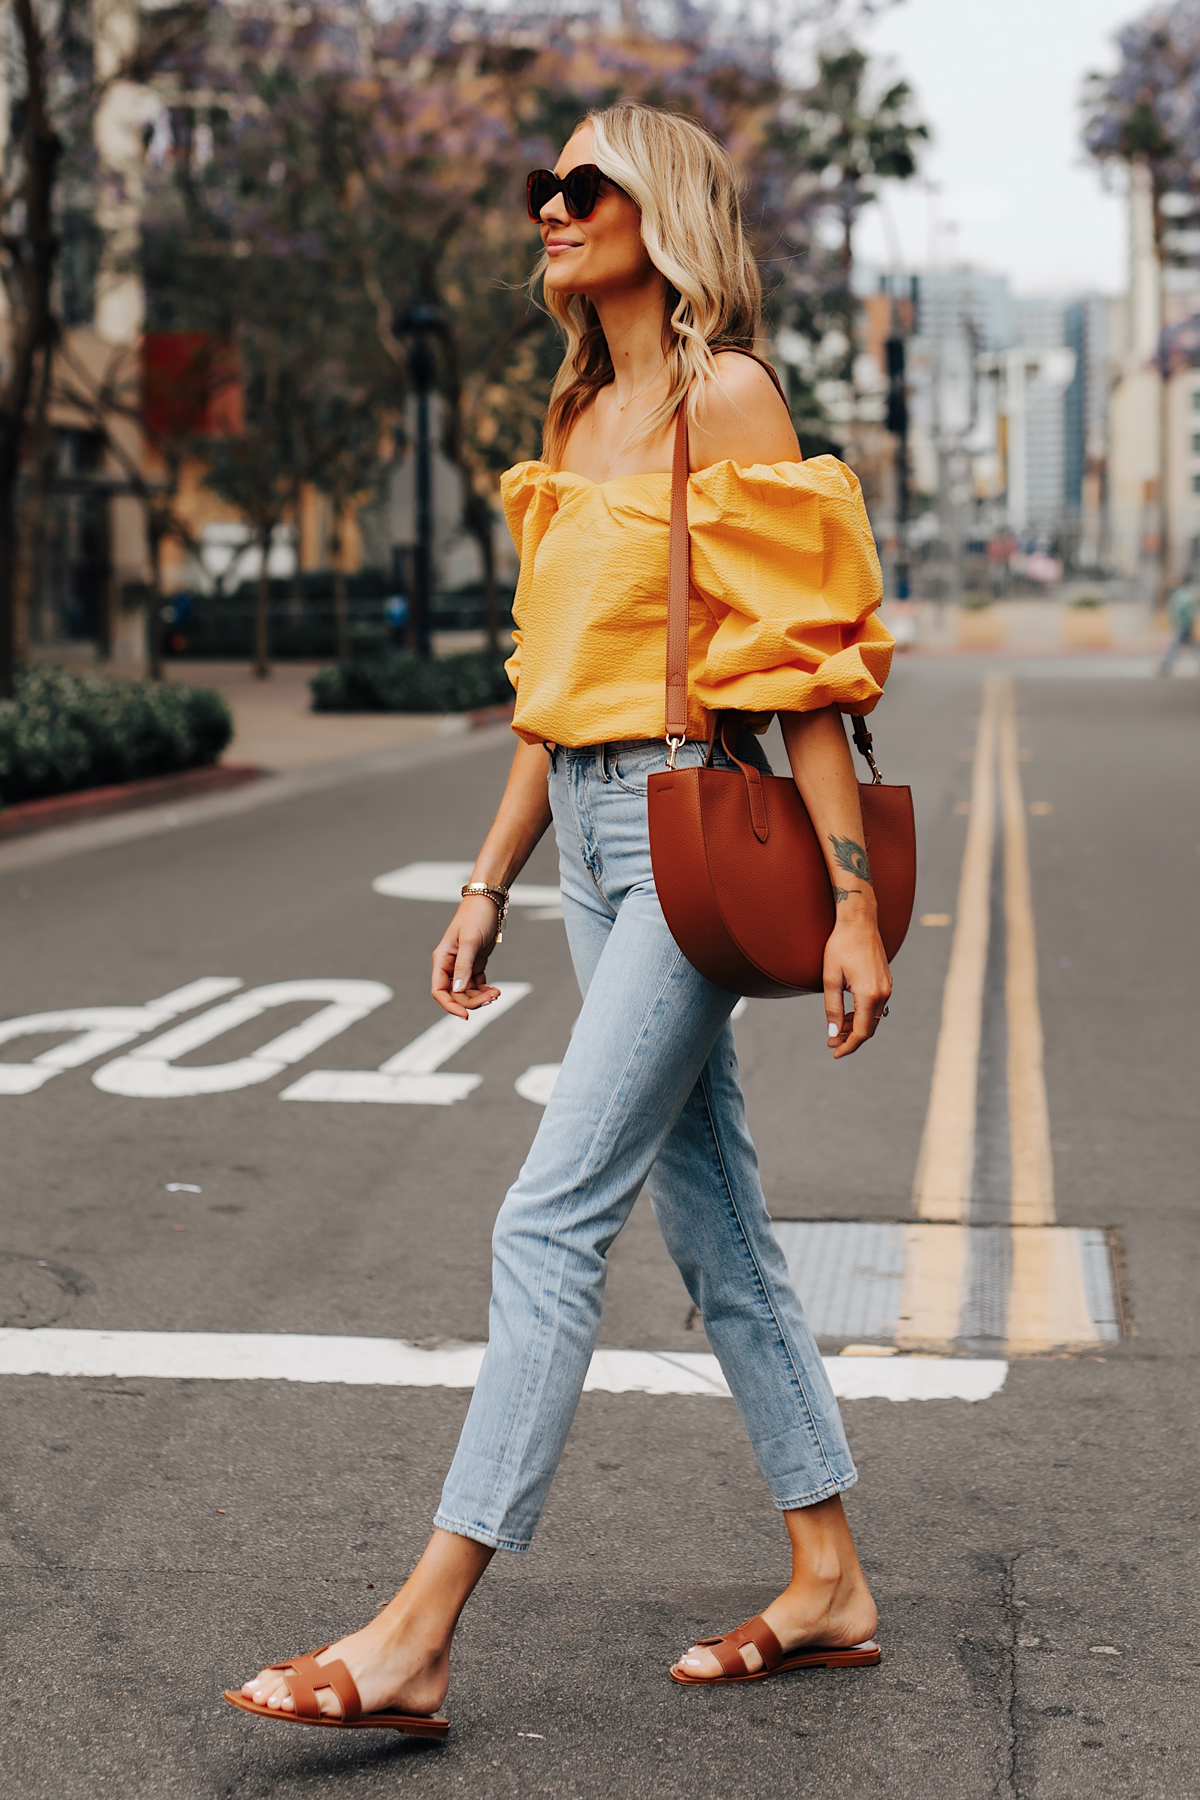 Fashion Jackson Wearing Cuyana Yellow Off the Shoulder Blouse Denim Ankle Jeans Hermes Oran Gold Sandals Cuyana Tan Handbag